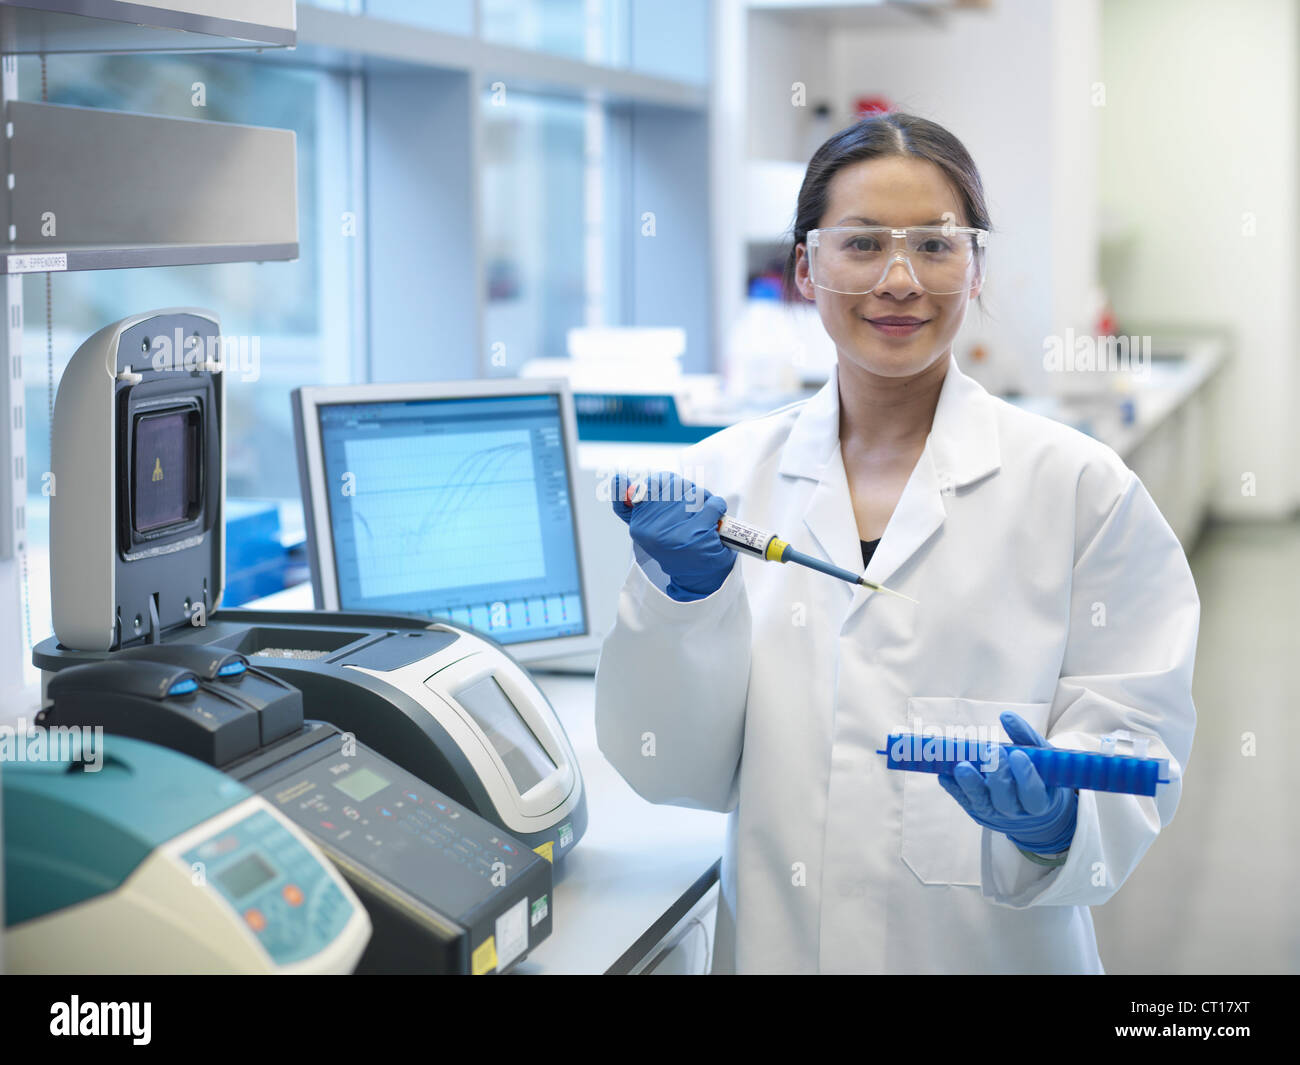 Scientists piping liquid into tubes - Stock Image